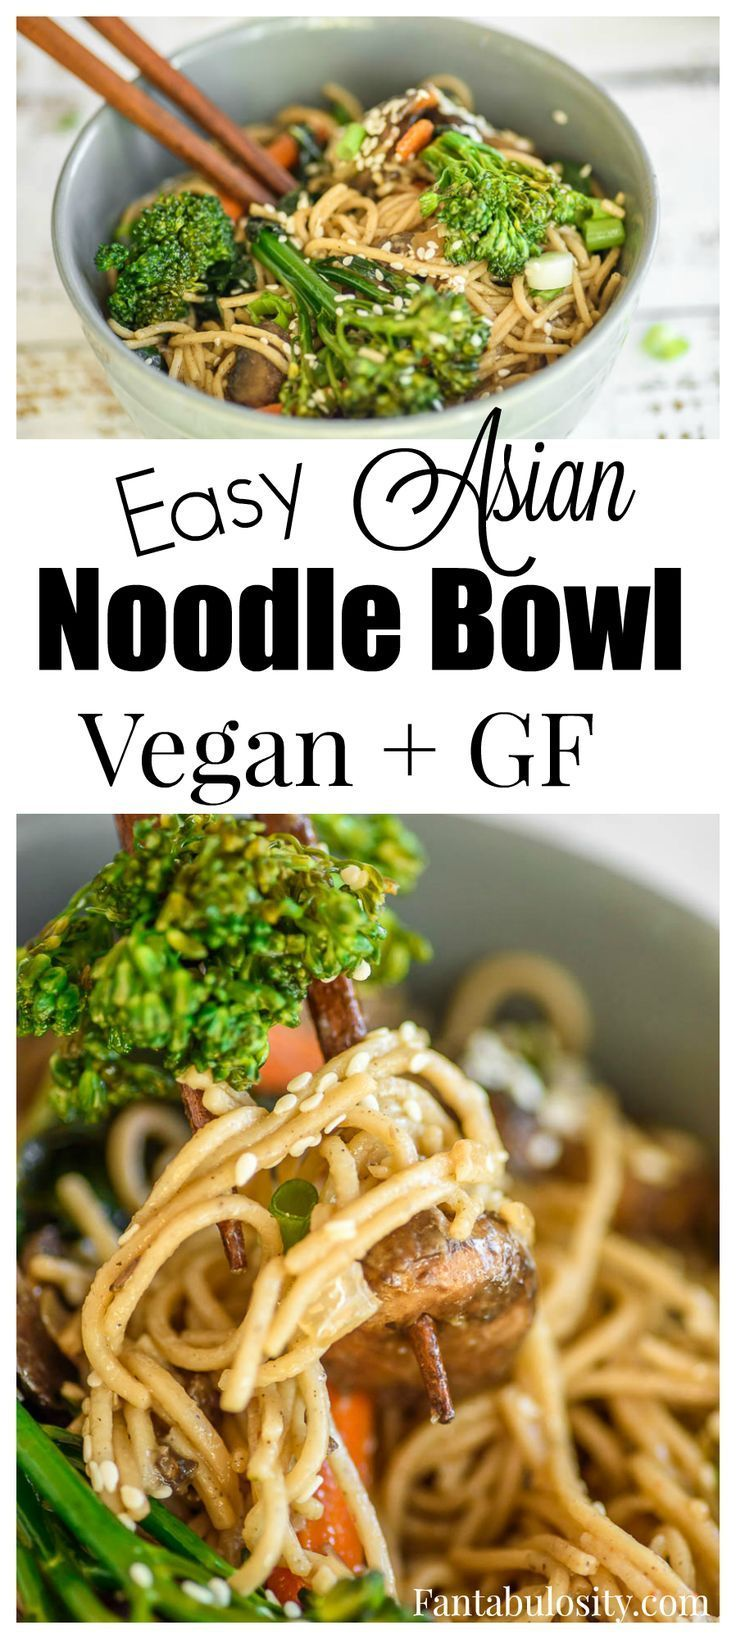 Easy Asian Noodle Recipe Vegan And Gluten Free Vegan Asian Recipes Easy Asian Noodle Recipes Easy Asian Noodles